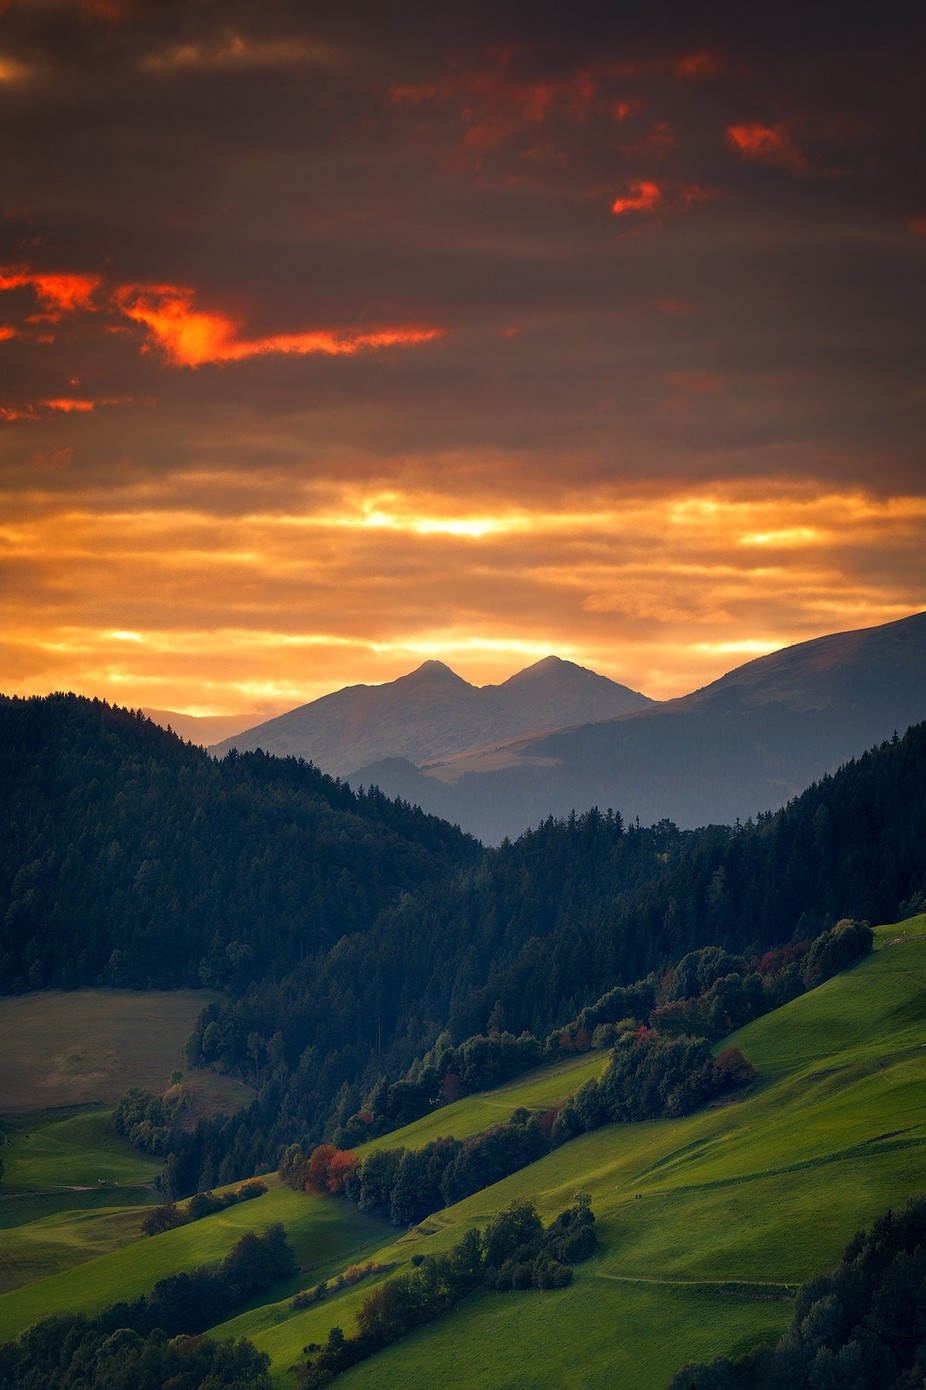 Last light of the Dolomites by Mbeiter - Bright Colors In Nature Photo Contest